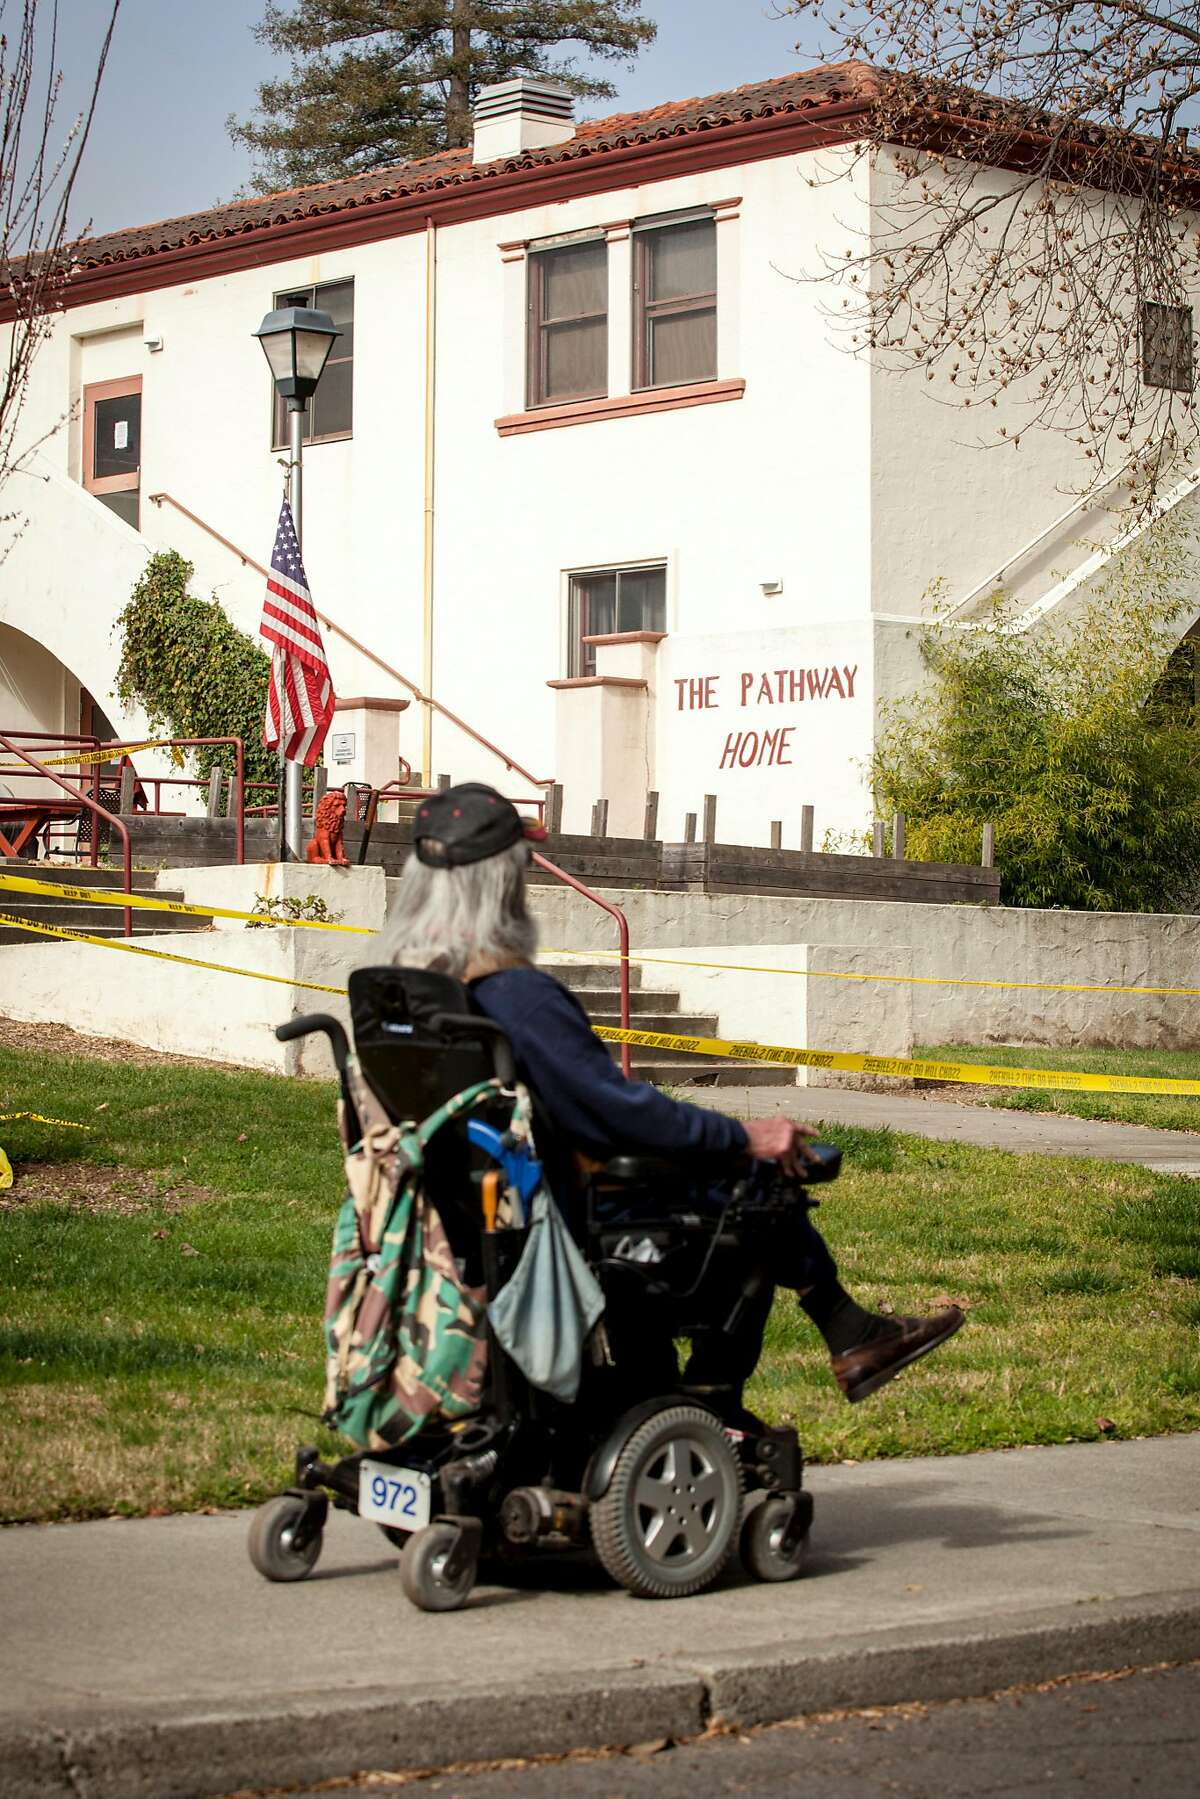 An unidentified resident of the Veteran Home of California rolls passed the front entrance of the Pathway Home where three employees of Pathway were killed by a former patient on Friday March 09 in Yountville, California, USA 11 Mar 2018.